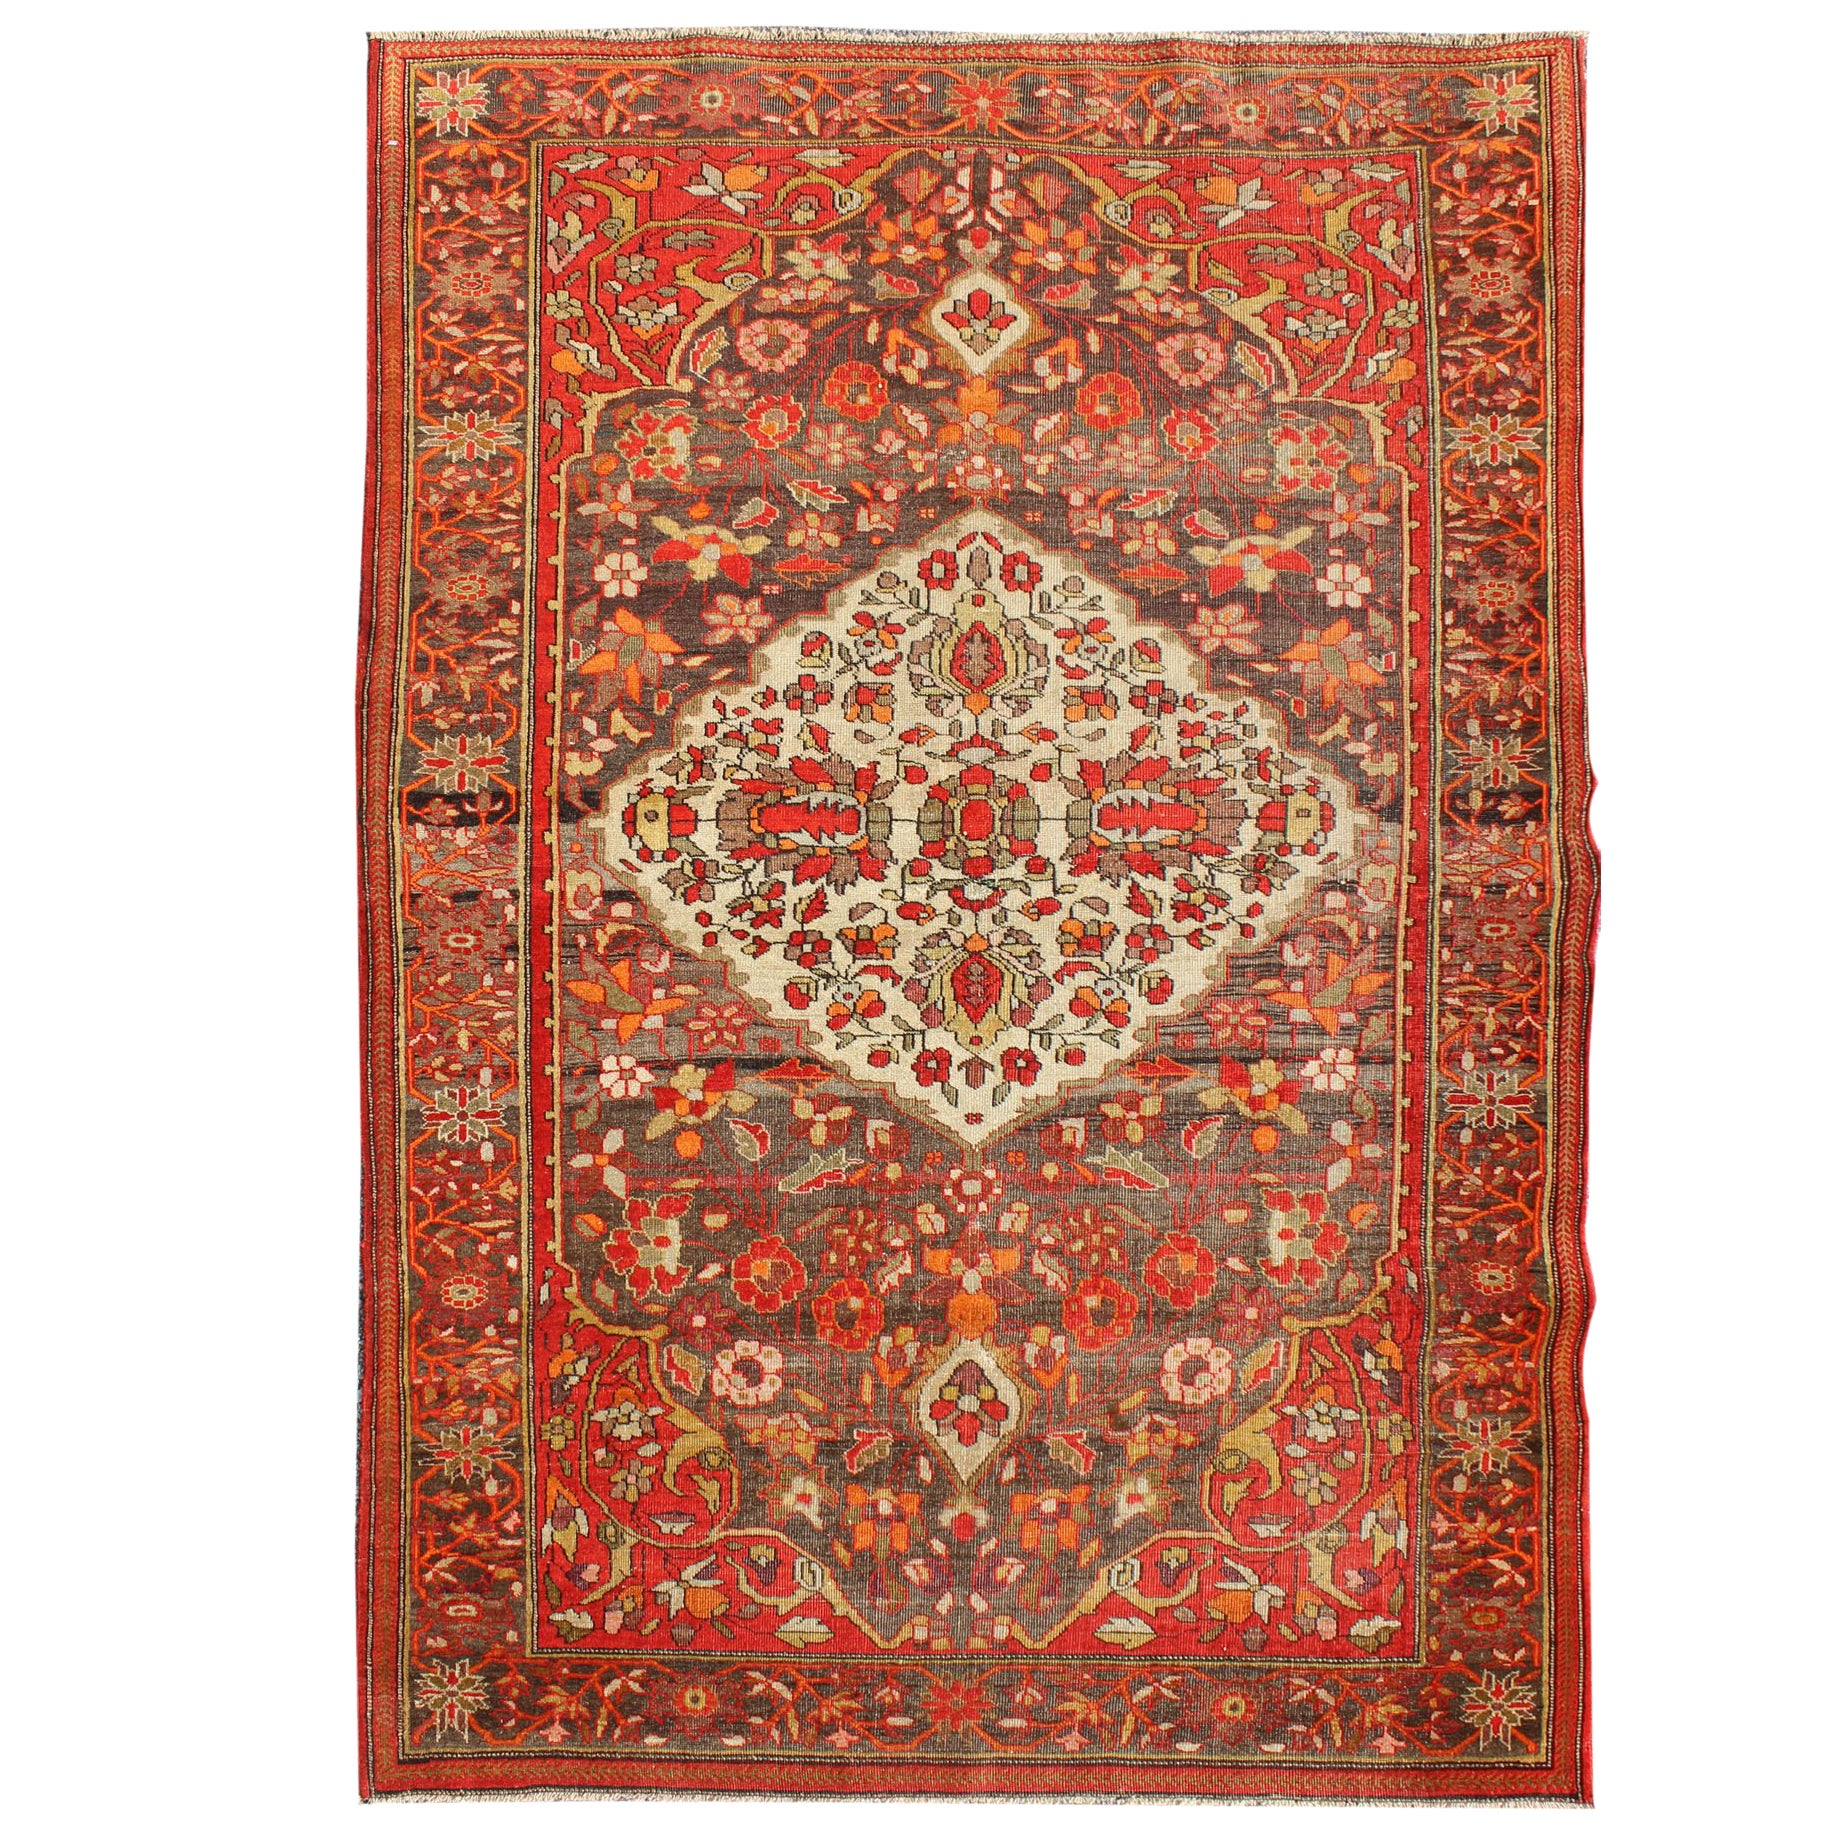 Vintage Persian Sarouk Rug With All Over Floral Design In Rich